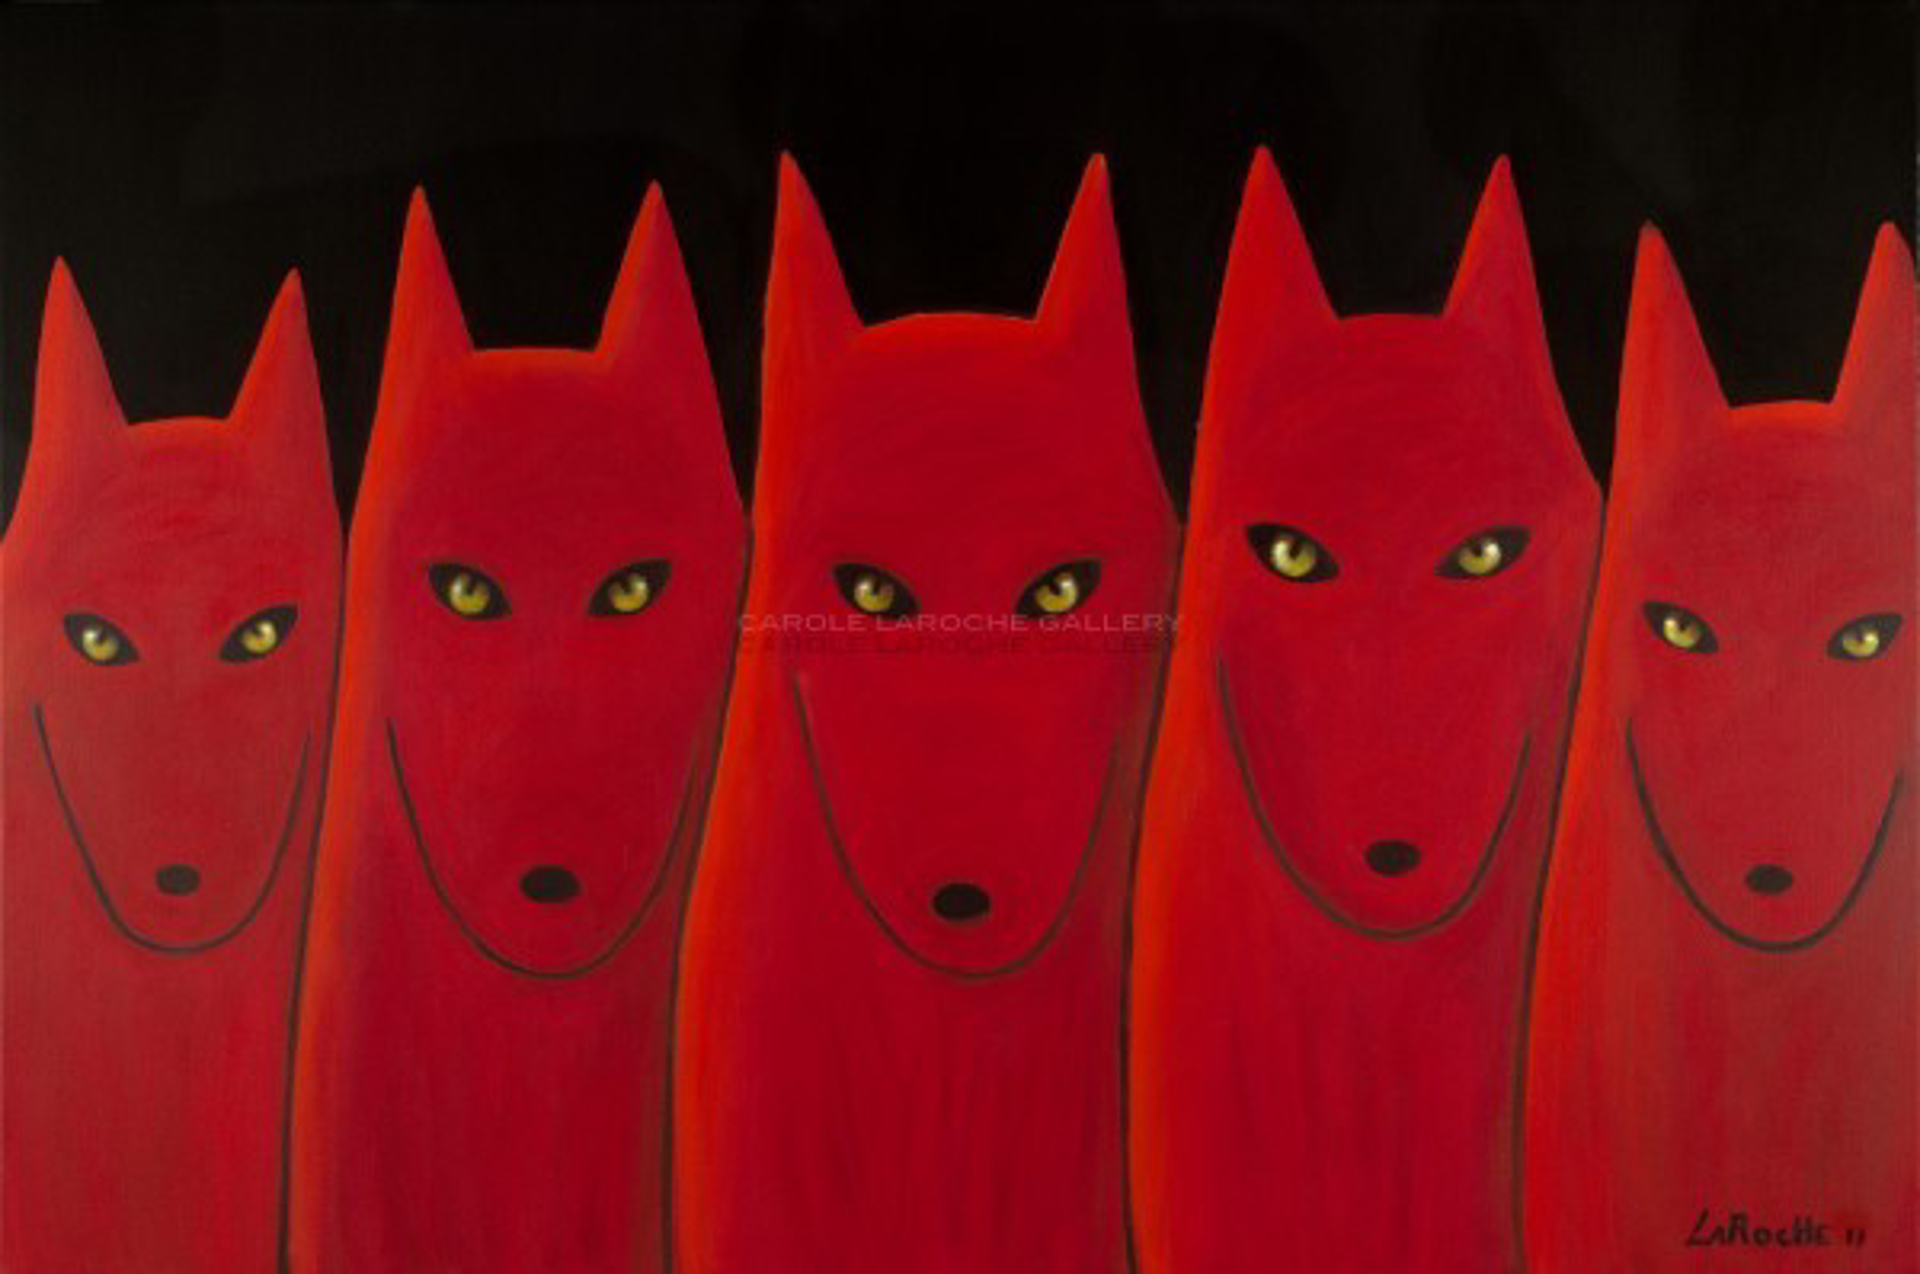 "FIVE RED WOLVES - limited edition giclee on canvas: (large) 40""x60"" $3500 or (medium) 30""x40"" $2200 by Carole LaRoche"